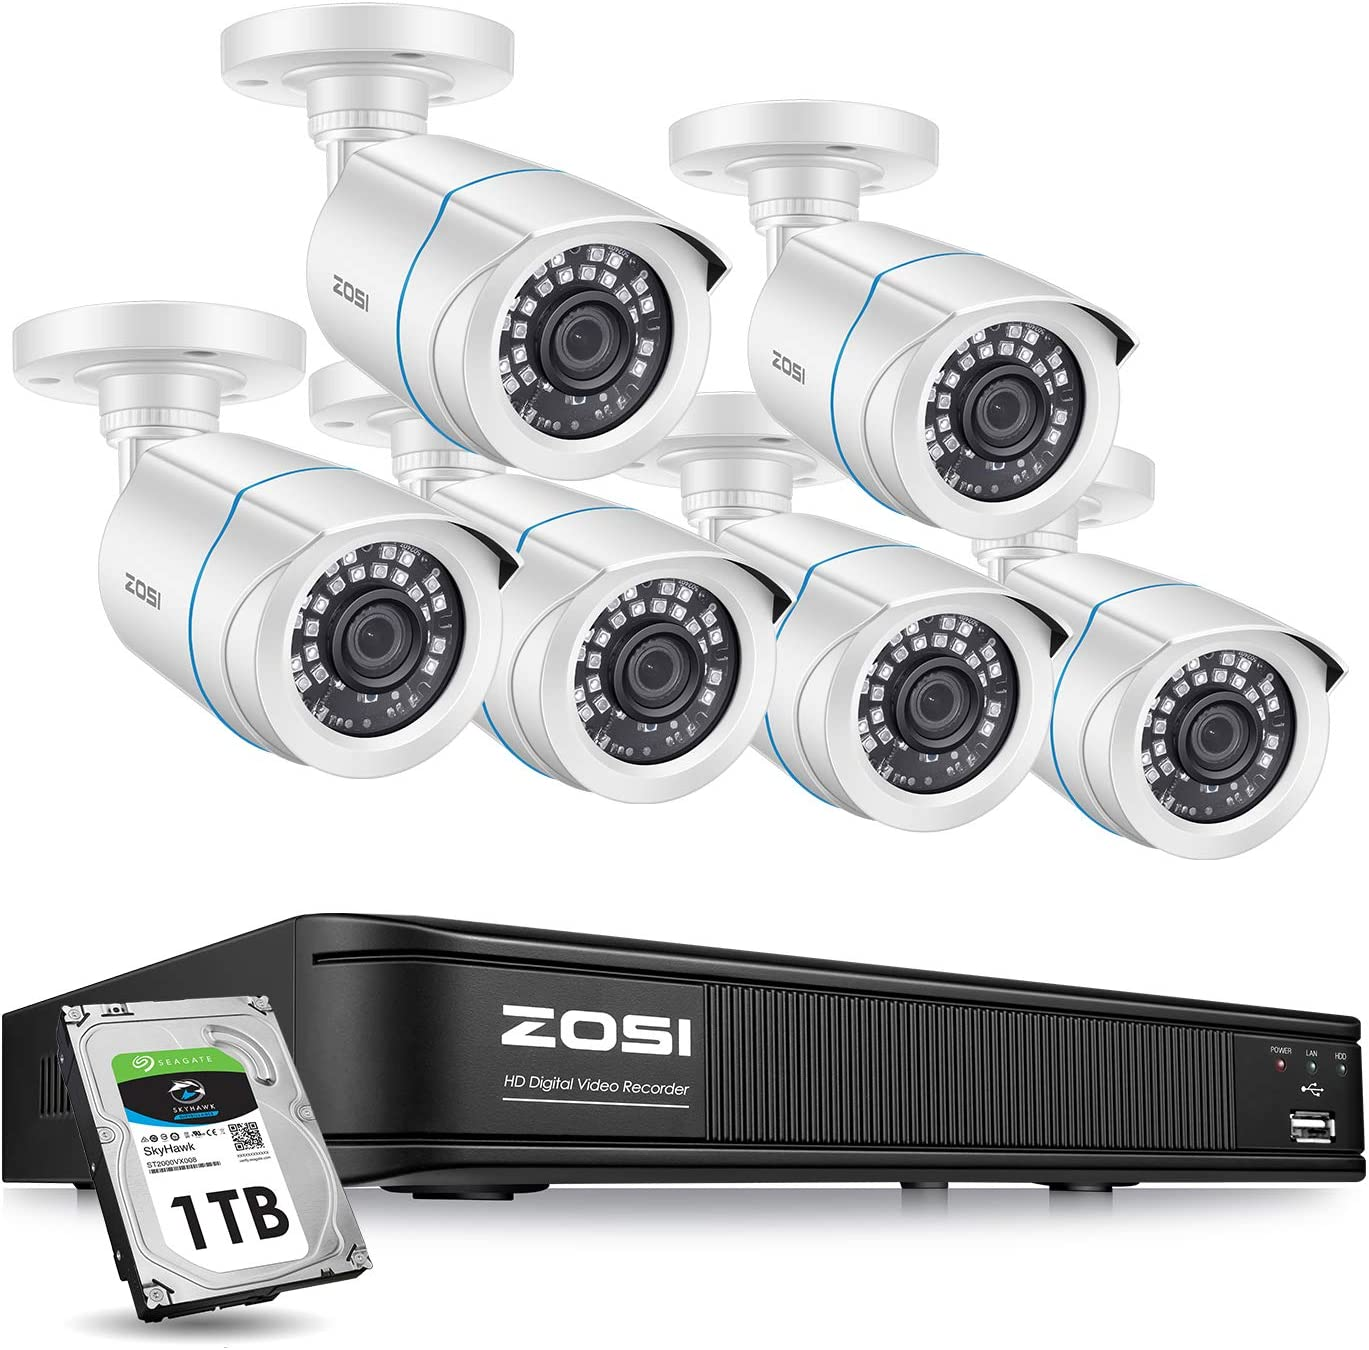 ZOSI 1080p Home Security Camera System Outdoor Indoor, H.265+ CCTV DVR Recorder 8 Channel with Hard Drive 1TB and 6 x 1080p Weatherproof Surveillance Bullet Camera, 80ft Night Vision, Remote Access